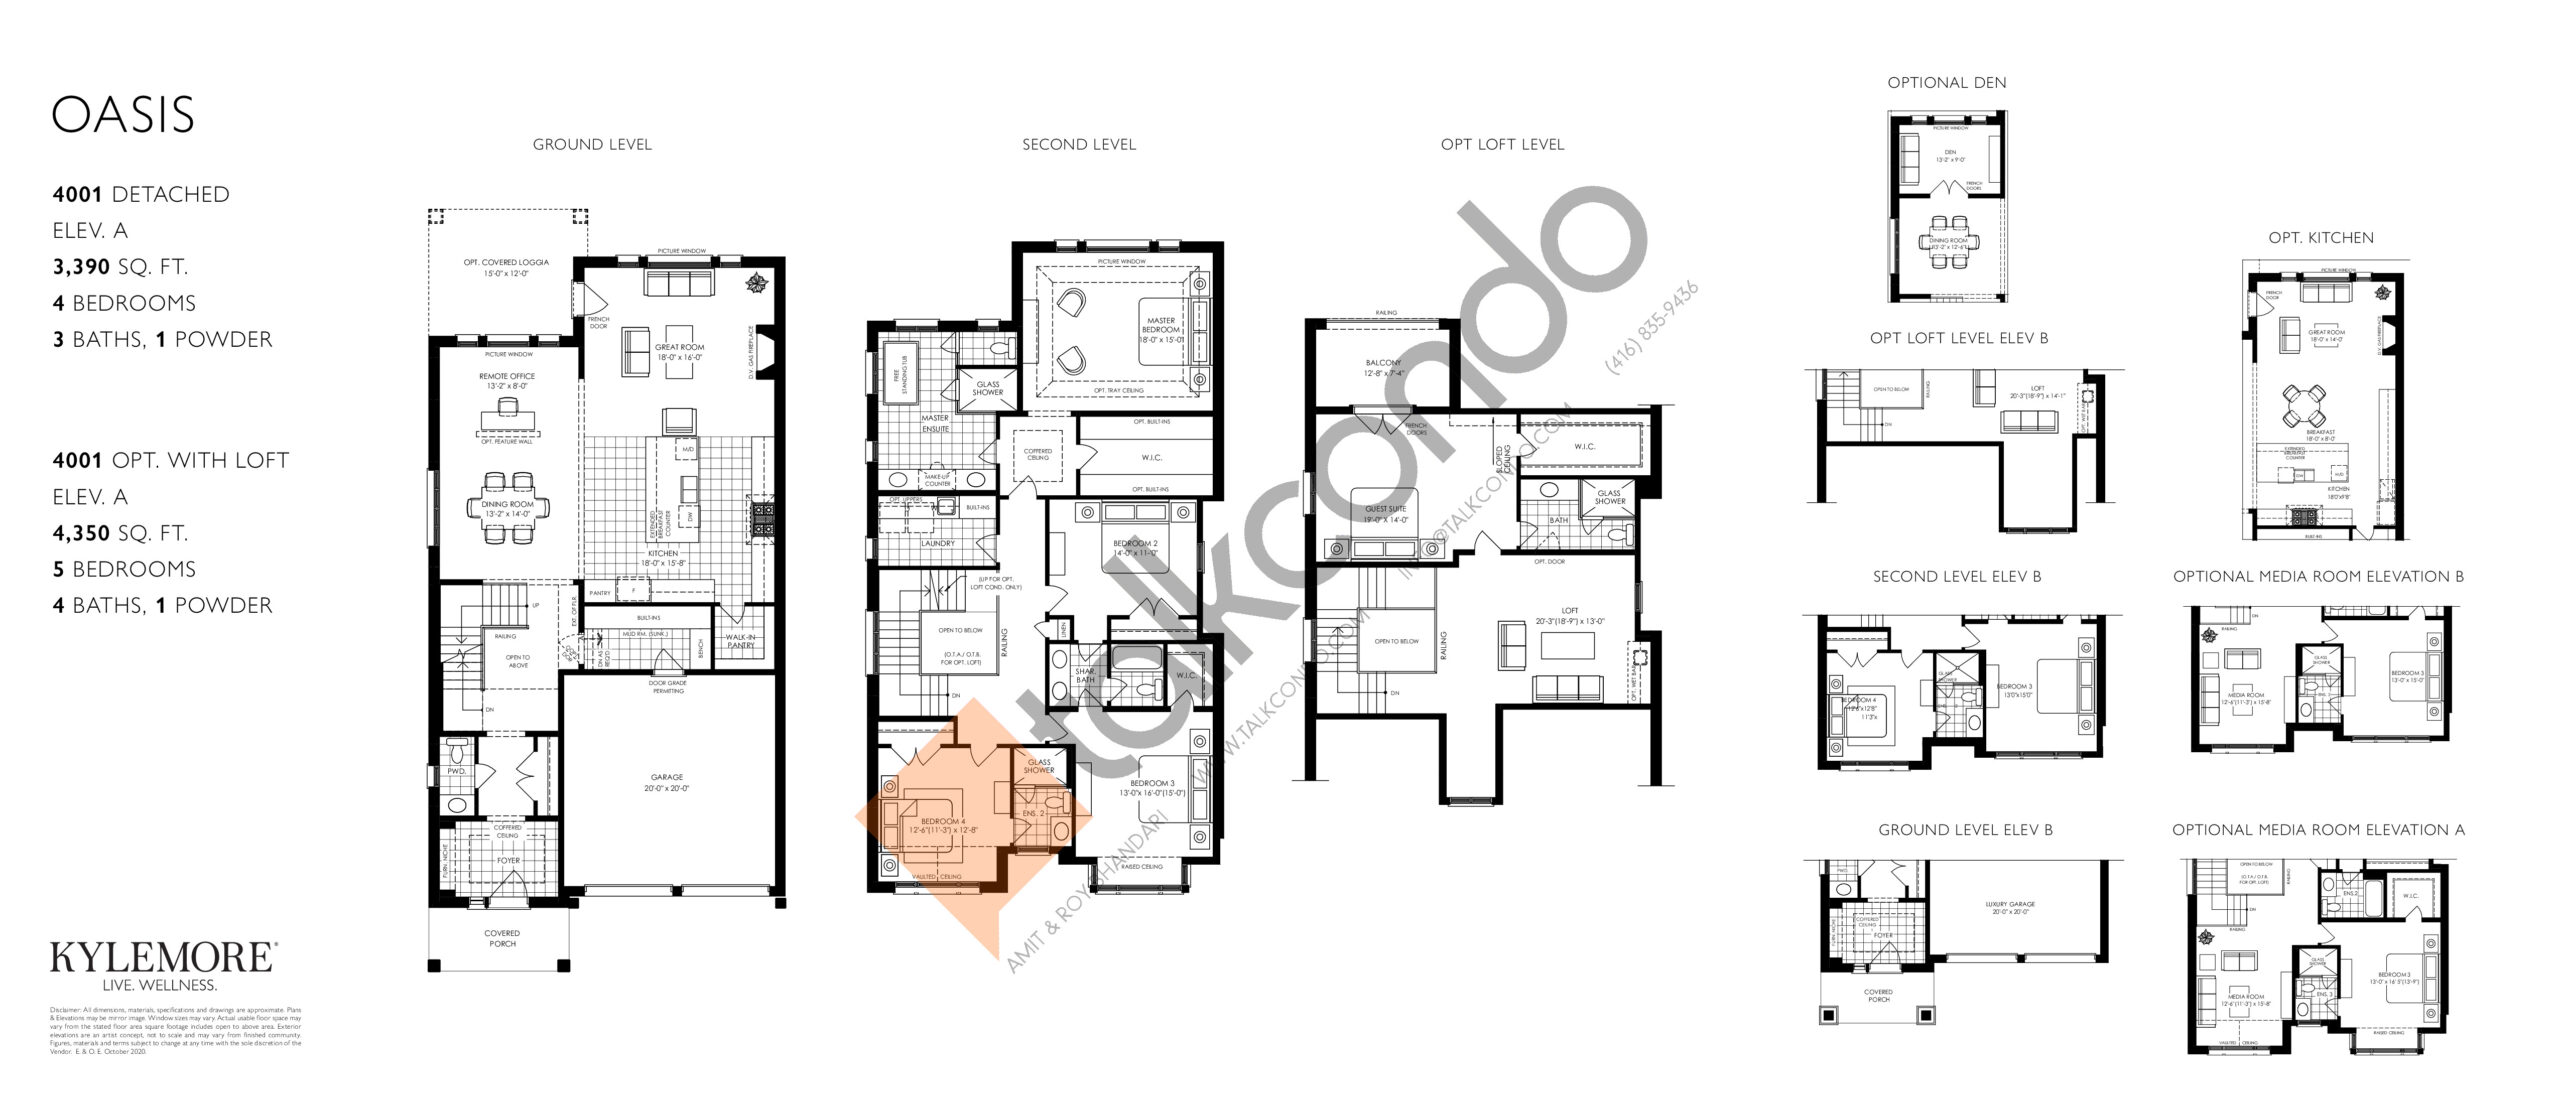 Oasis (Opt. Loft) Floor Plan at Angus Glen South Village - 4410 sq.ft